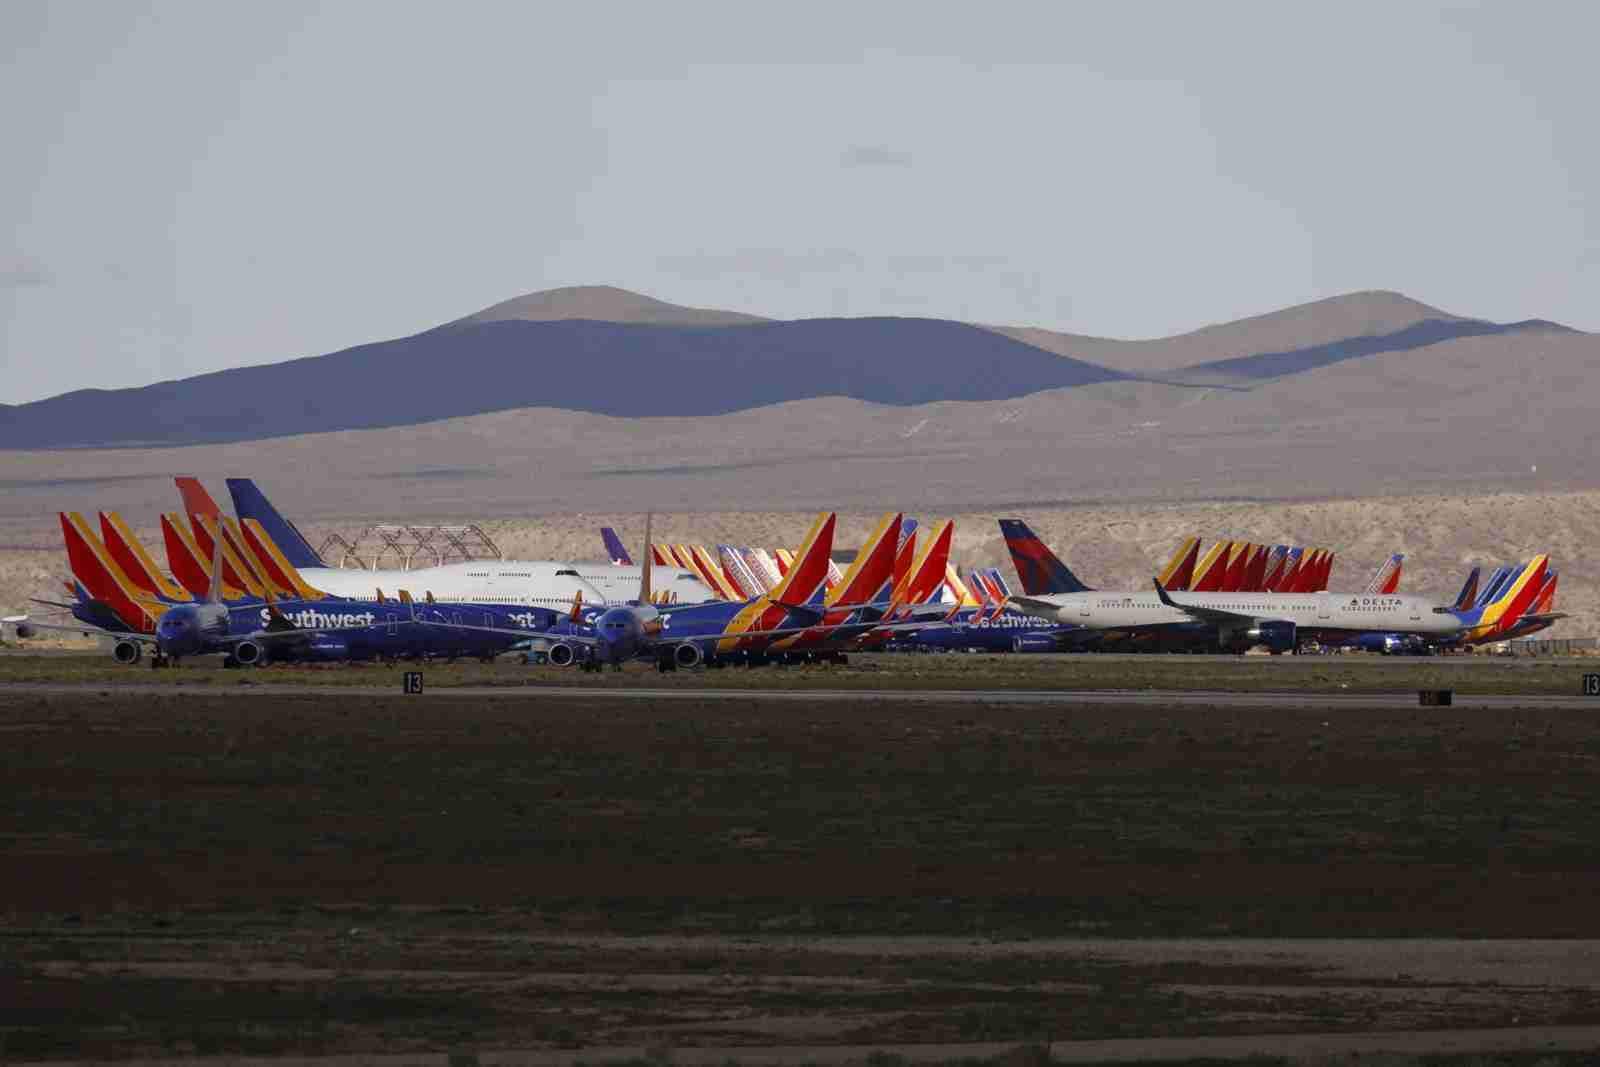 A Delta Air Lines Inc. aircraft, center right, taxis past Southwest Airlines Co. planes parked at a field in Victorville, California, U.S., on Monday, March 23, 2020. Southwest, which carries the most passengers in domestic markets, said it will cut 1,000 daily flights starting Sunday, ahead of a previously planned 20% capacity reduction, because of a rapid drop in near-term demand. (Photo by Patrick T. Fallon/Bloomberg/Getty Images)